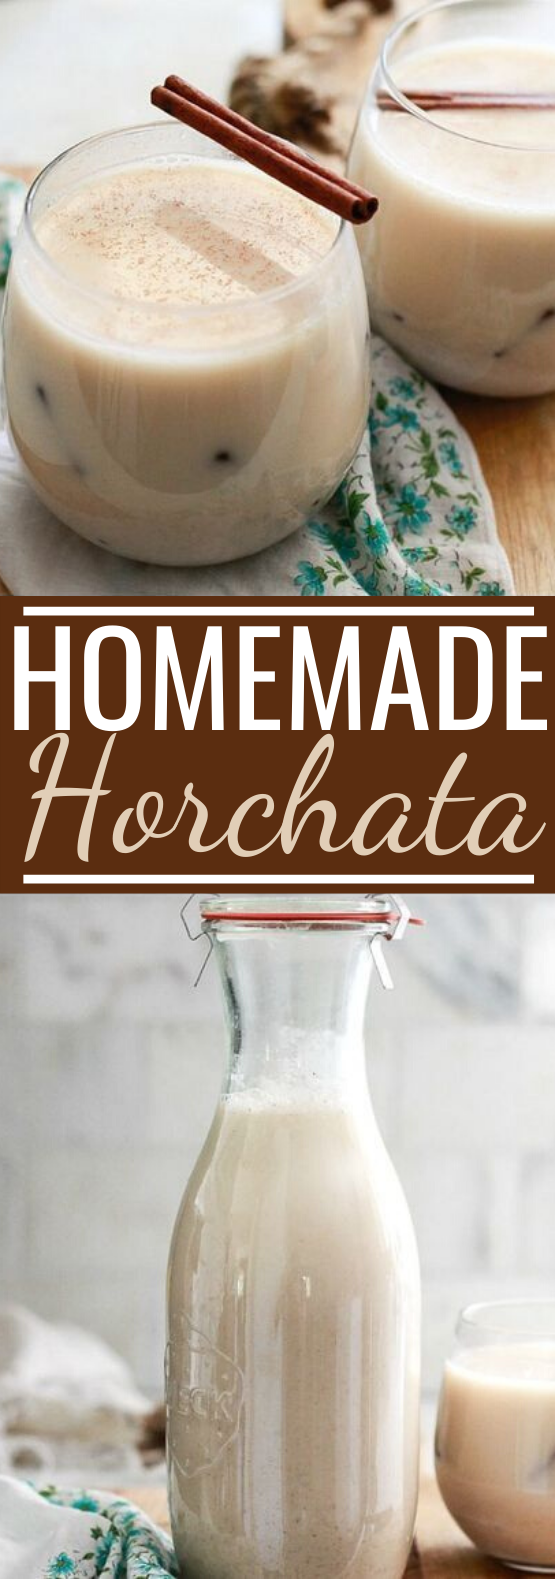 Horchata #drinks #nonalcoholic #winter #iced #beverages